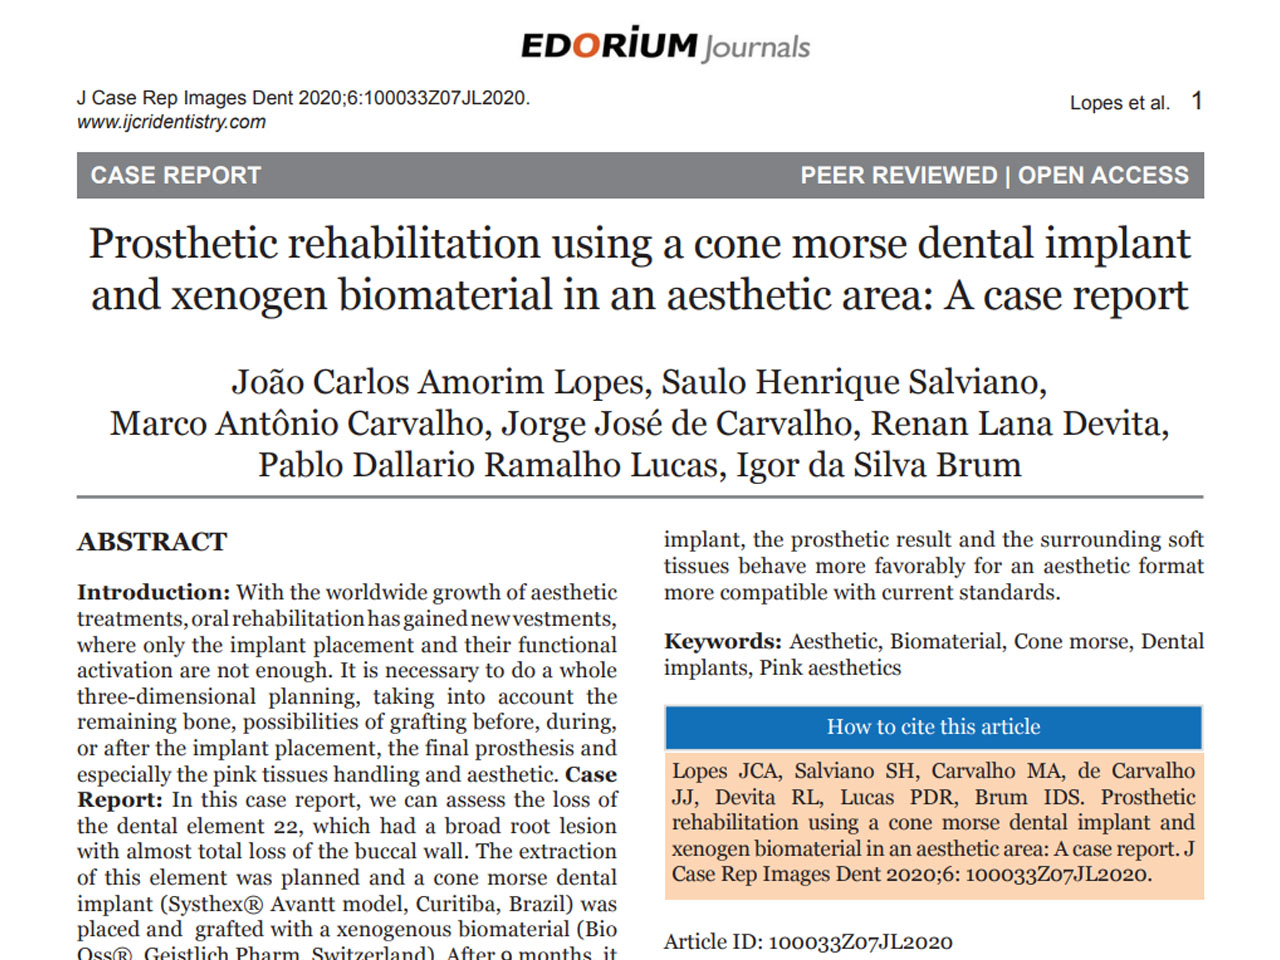 Base Cientifica Prosthetic Rehabilitation using a cone morse dental implant and xenogem biomaterial in an aesthetic area.